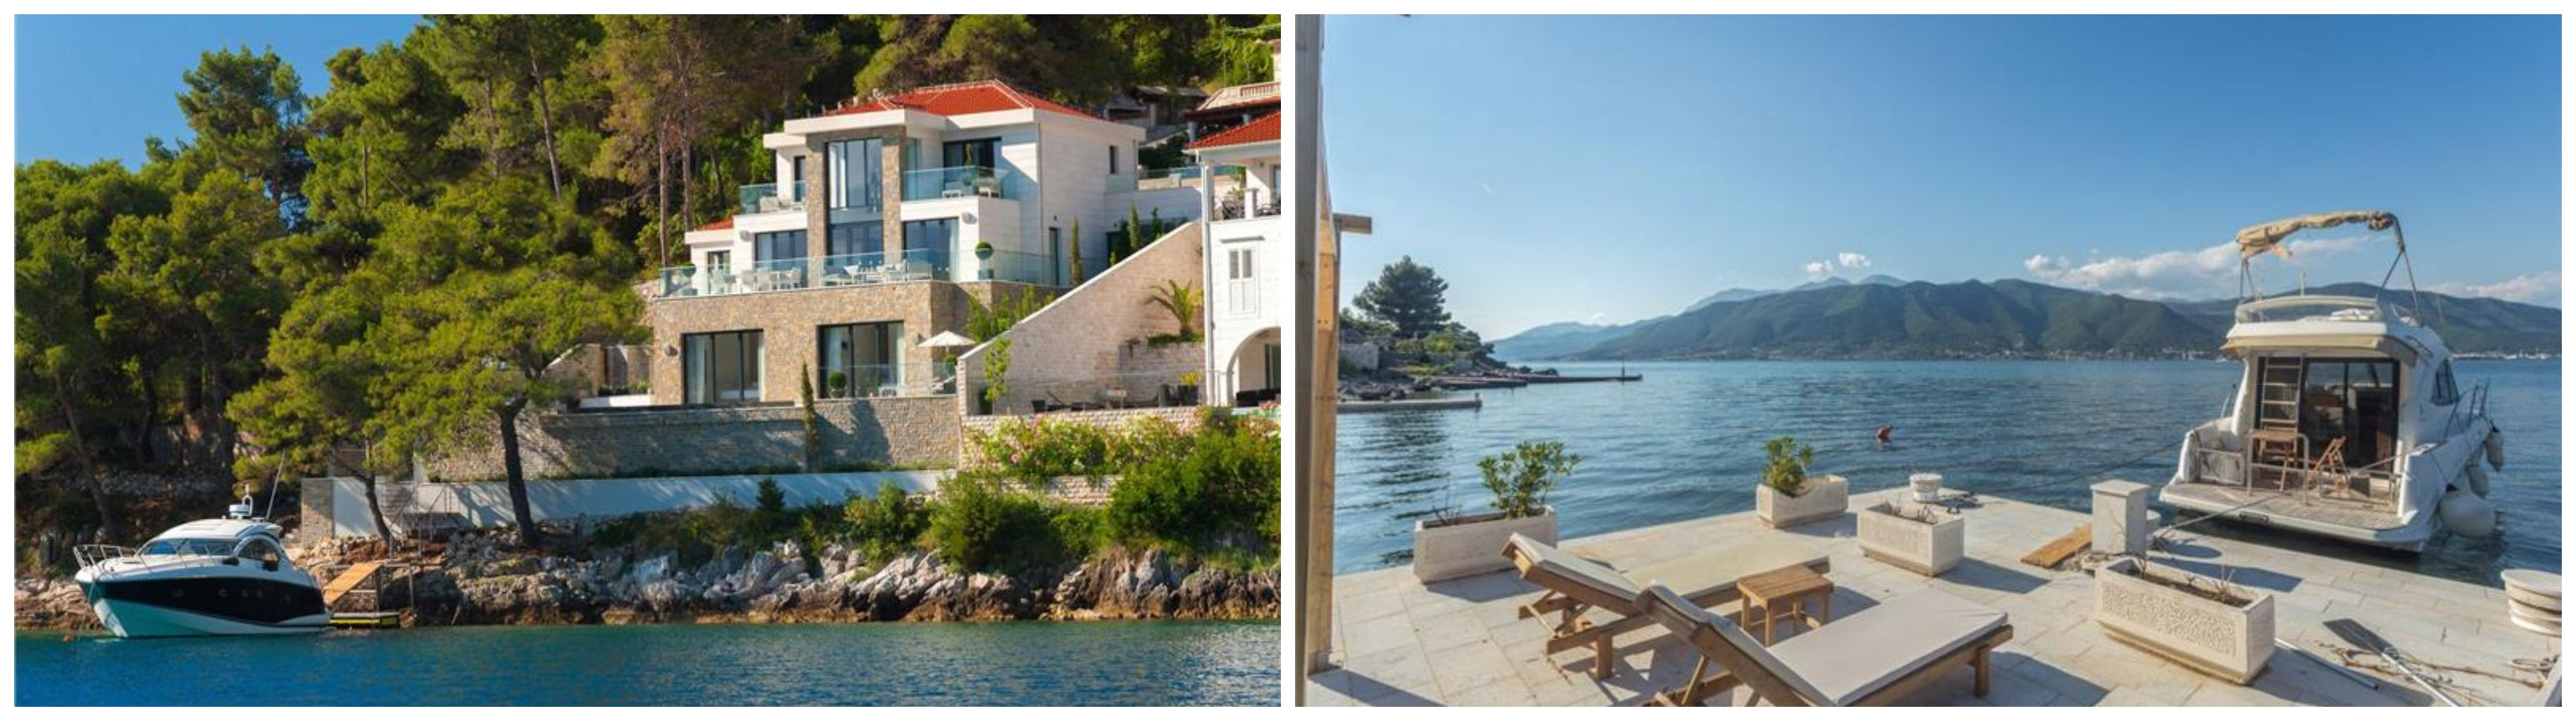 Villas with Boat Mooring